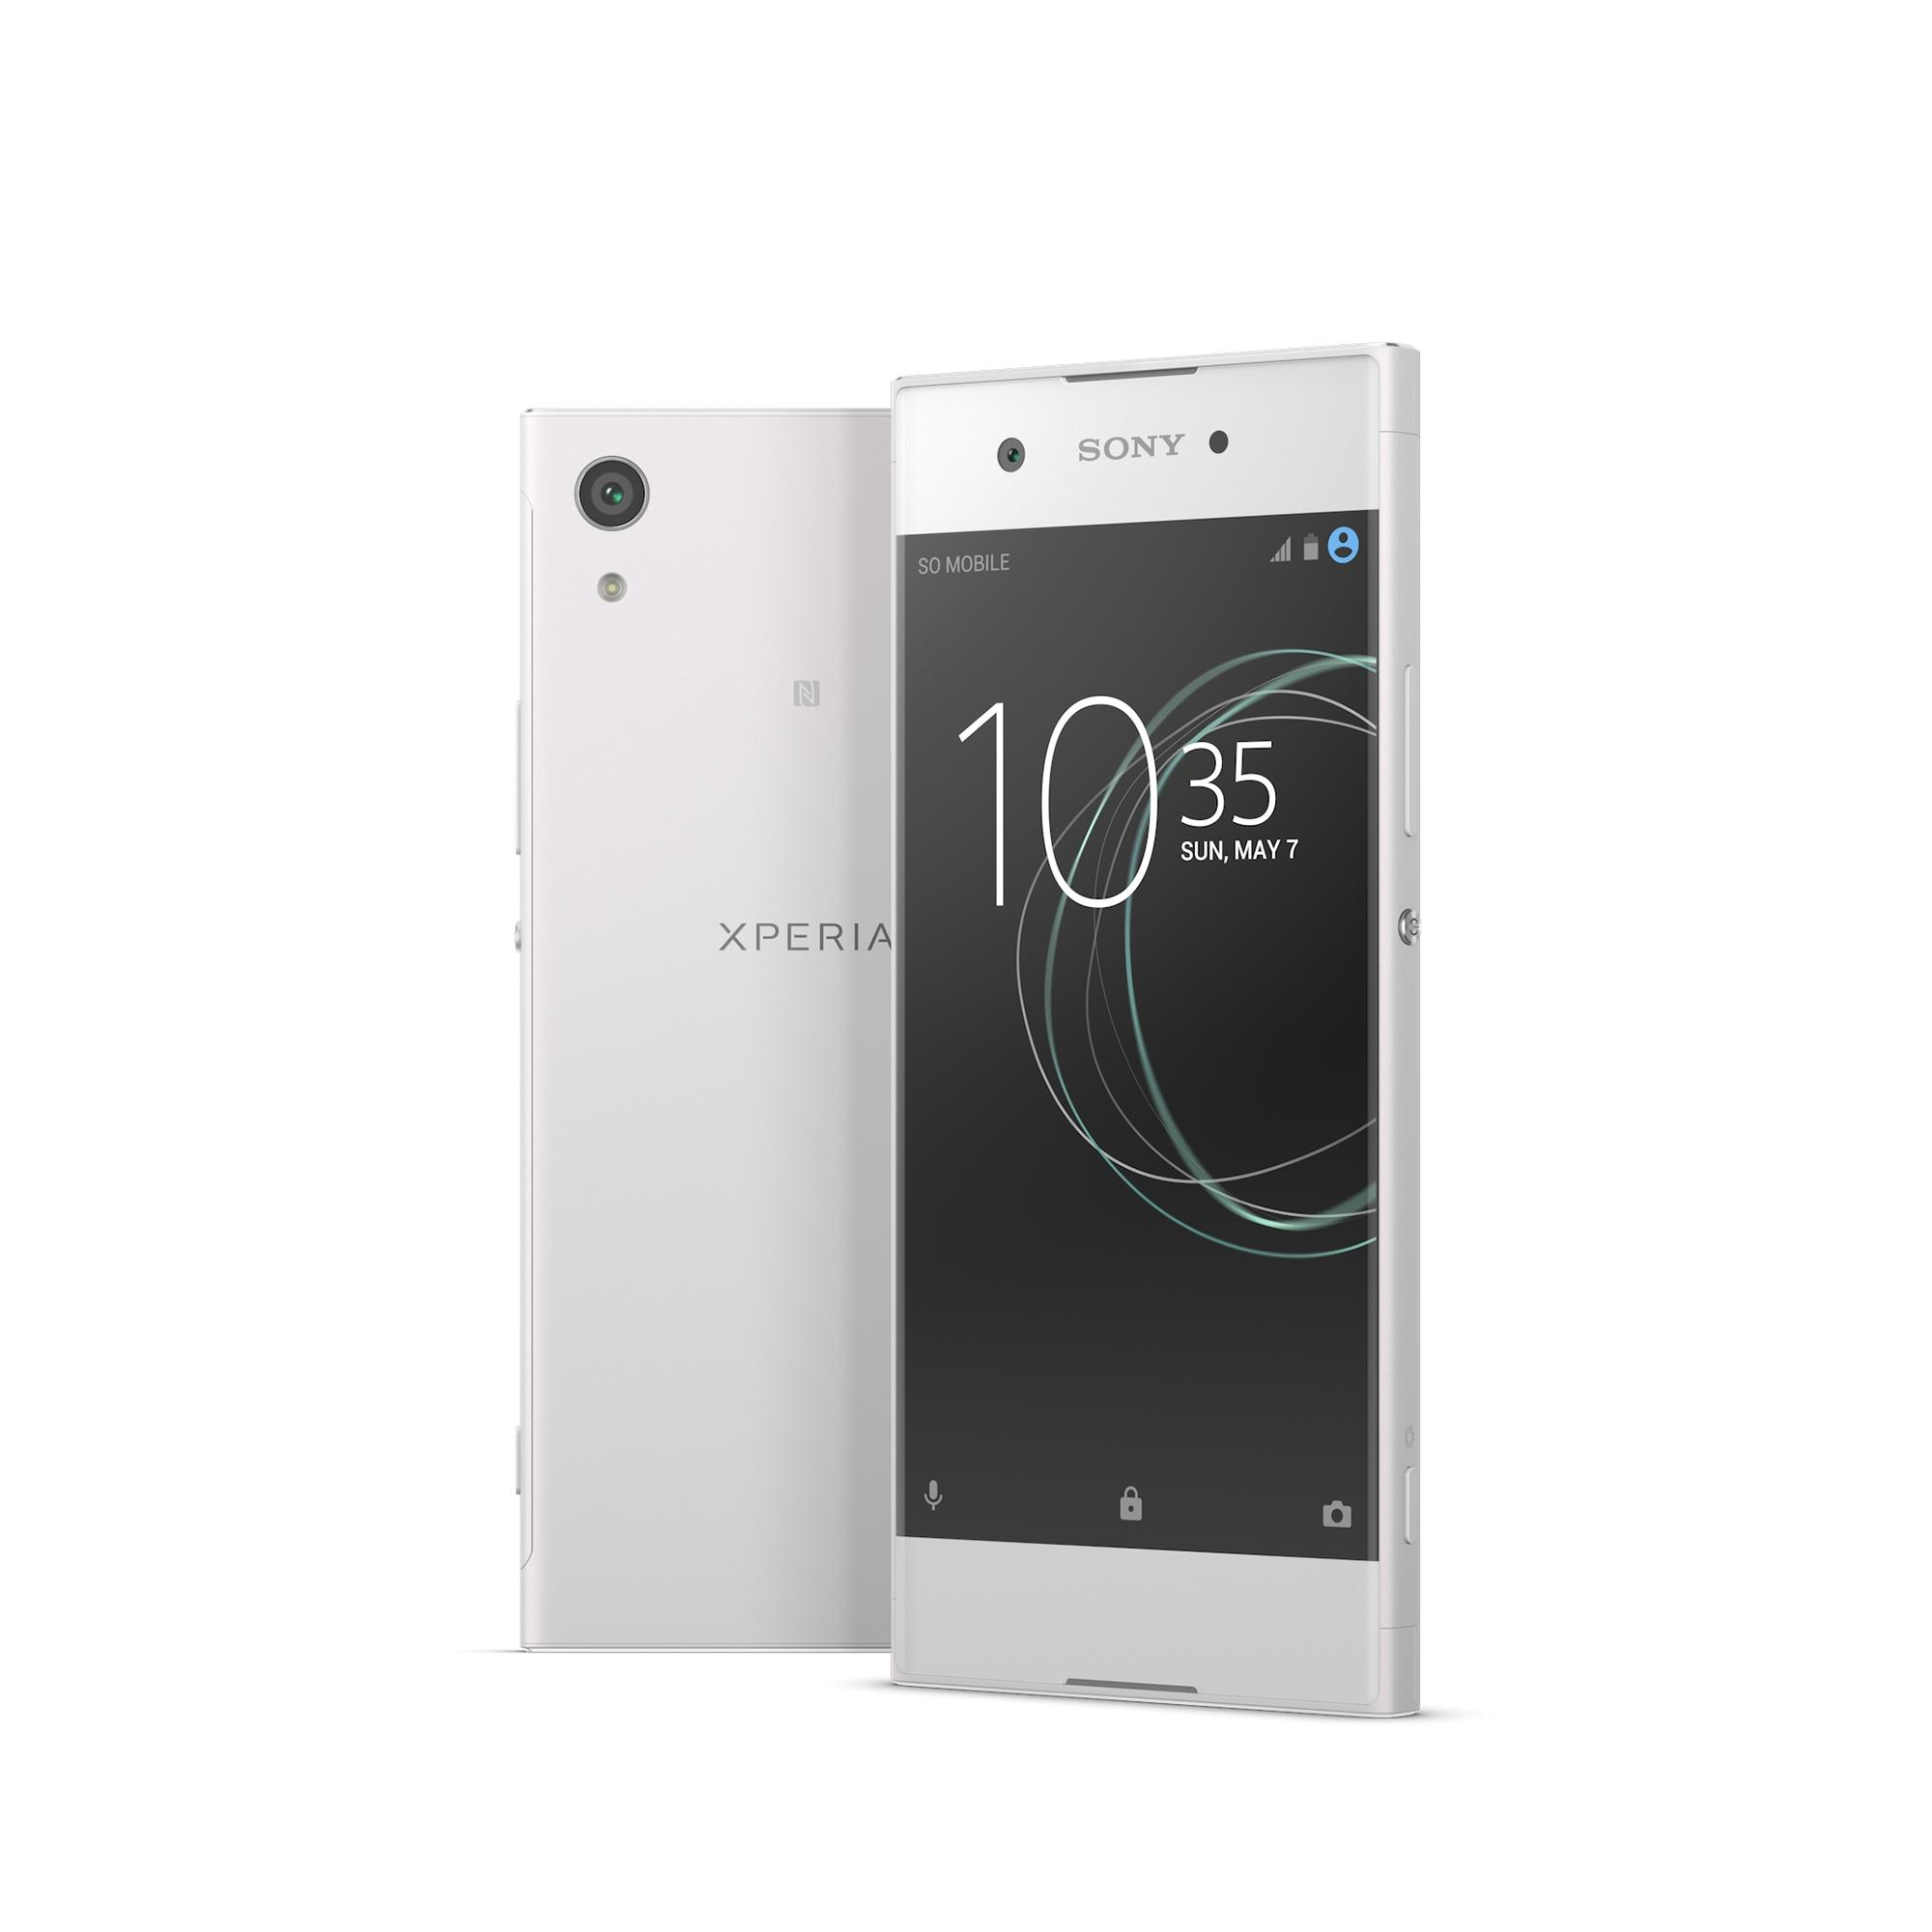 0tto Online Shop Buy Sony Otto Kivi Mobiles At Best Prices Online In Nepal Daraz